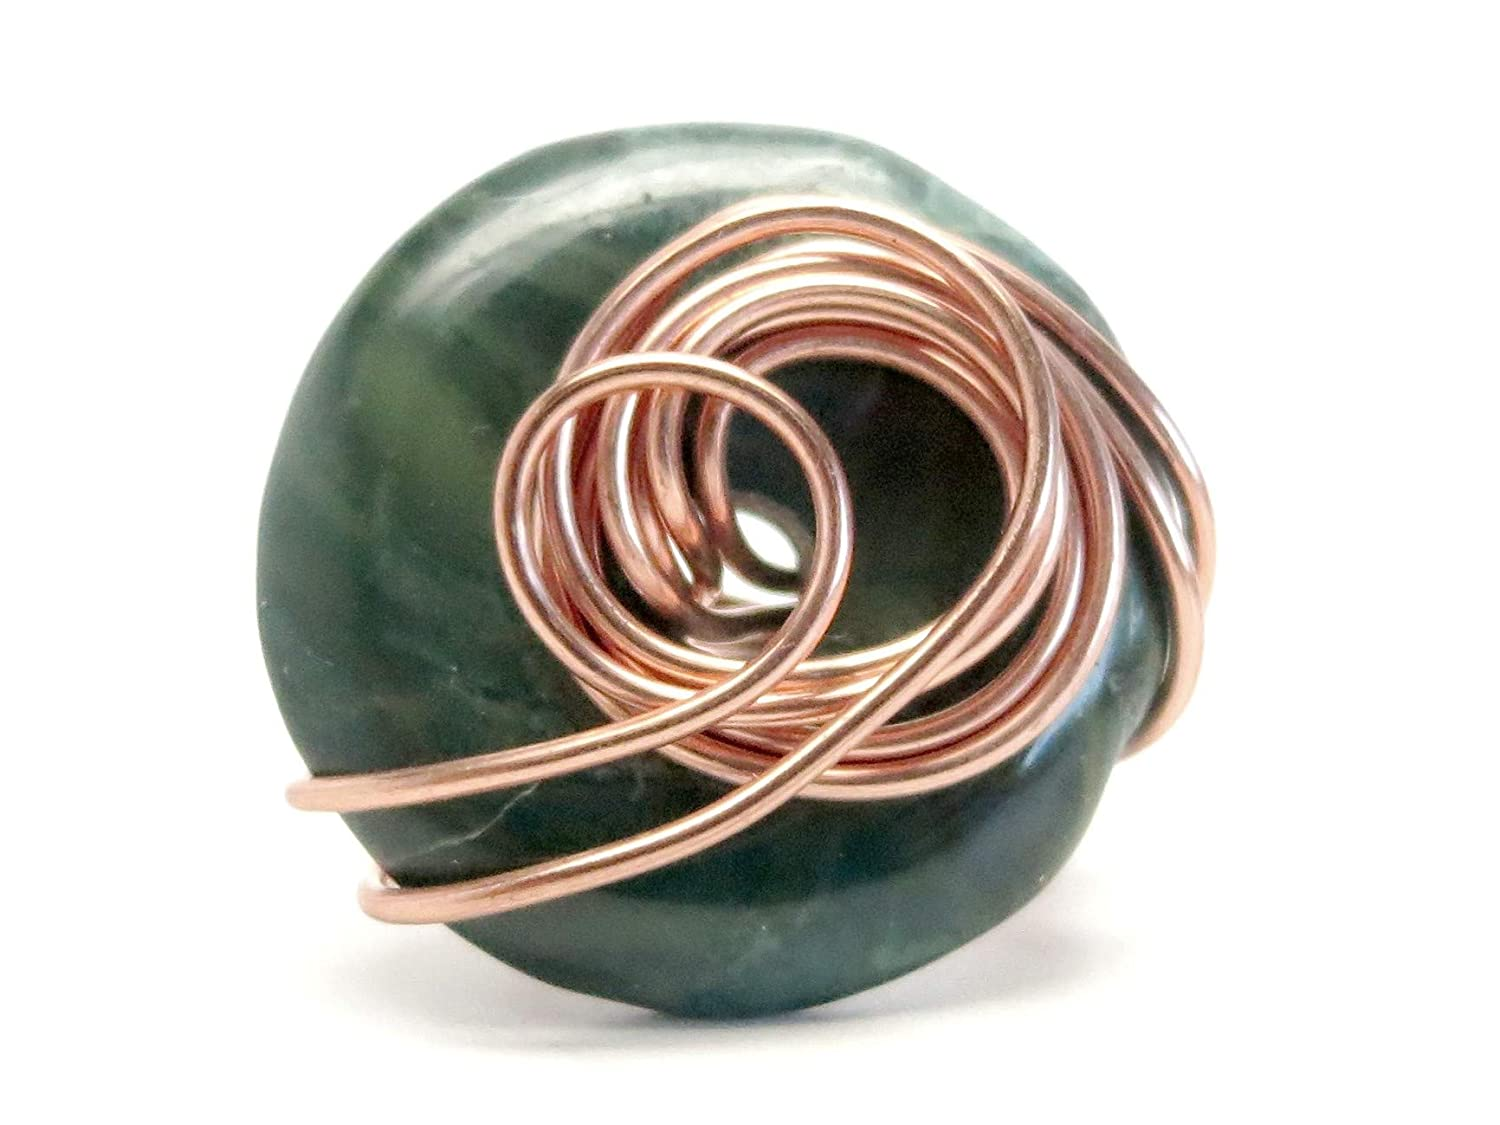 SatinCrystals Jasper Green Ring 6 Specialty One-of-Kind Copper Wire Wrapped Donut Handmade Grounding Stone S01